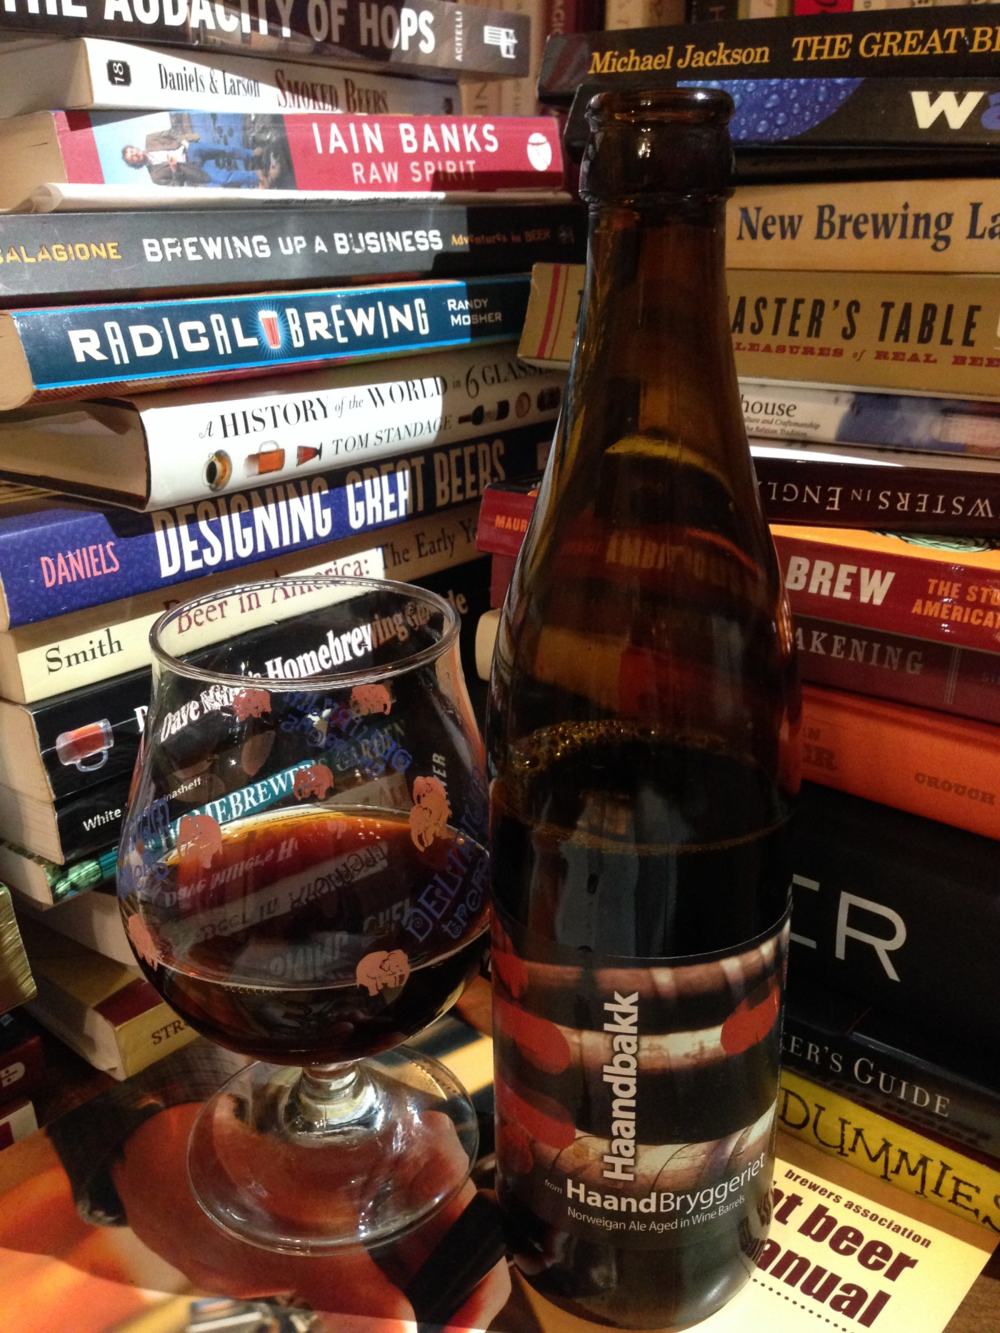 These are the books you need to read to become a beer expert these are the books you need to read to become a beer expert pass the certified cicerone exam xflitez Image collections